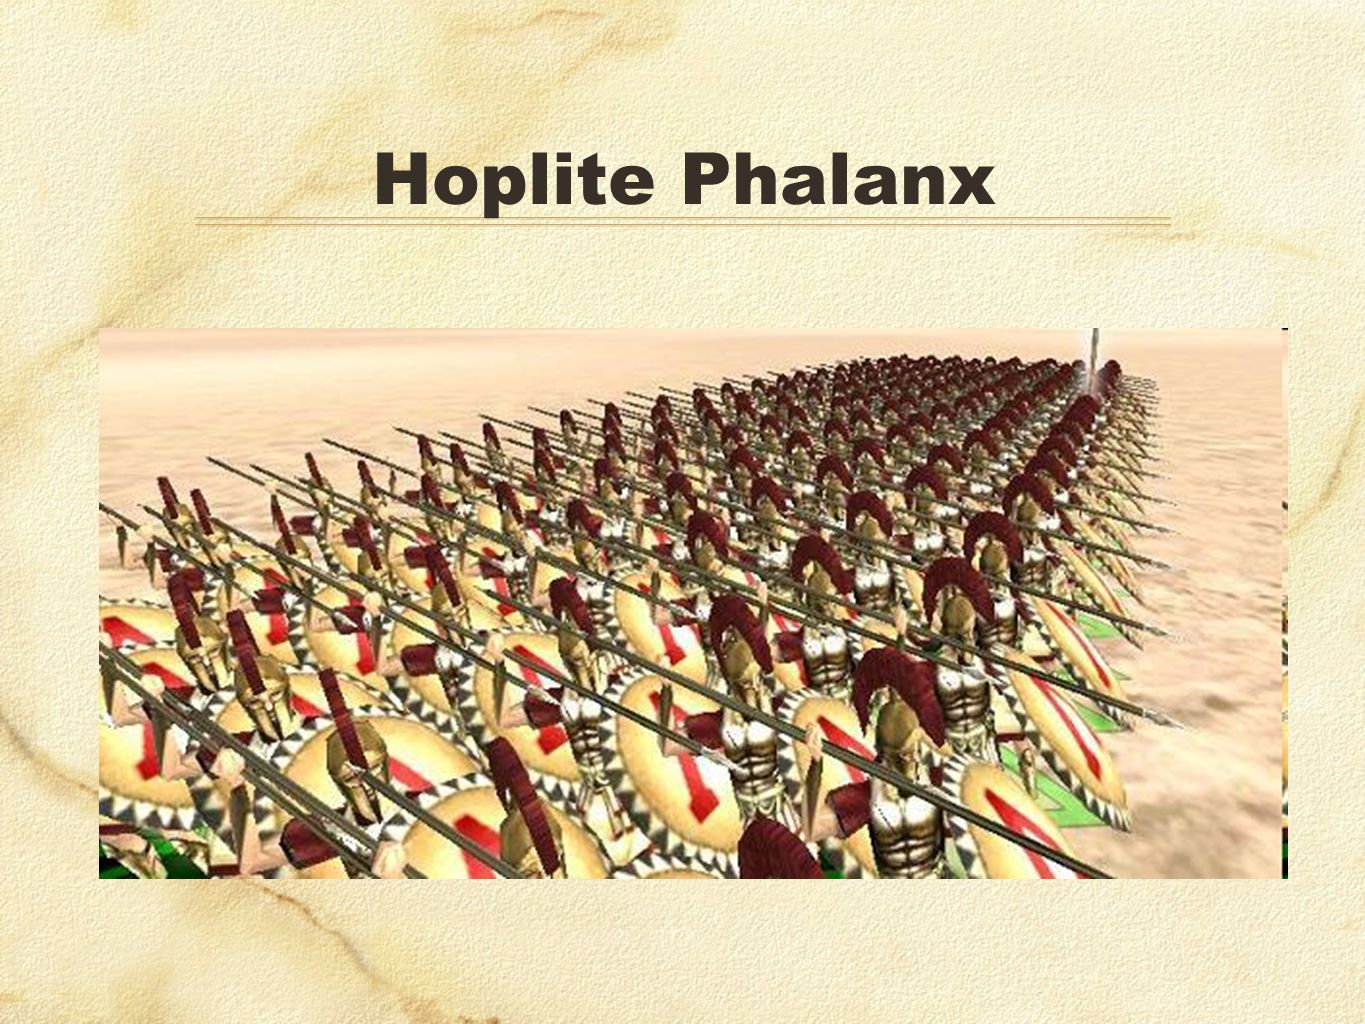 Hoplite Phalanx Also on islands of the Aegean, but nothing as influential as…